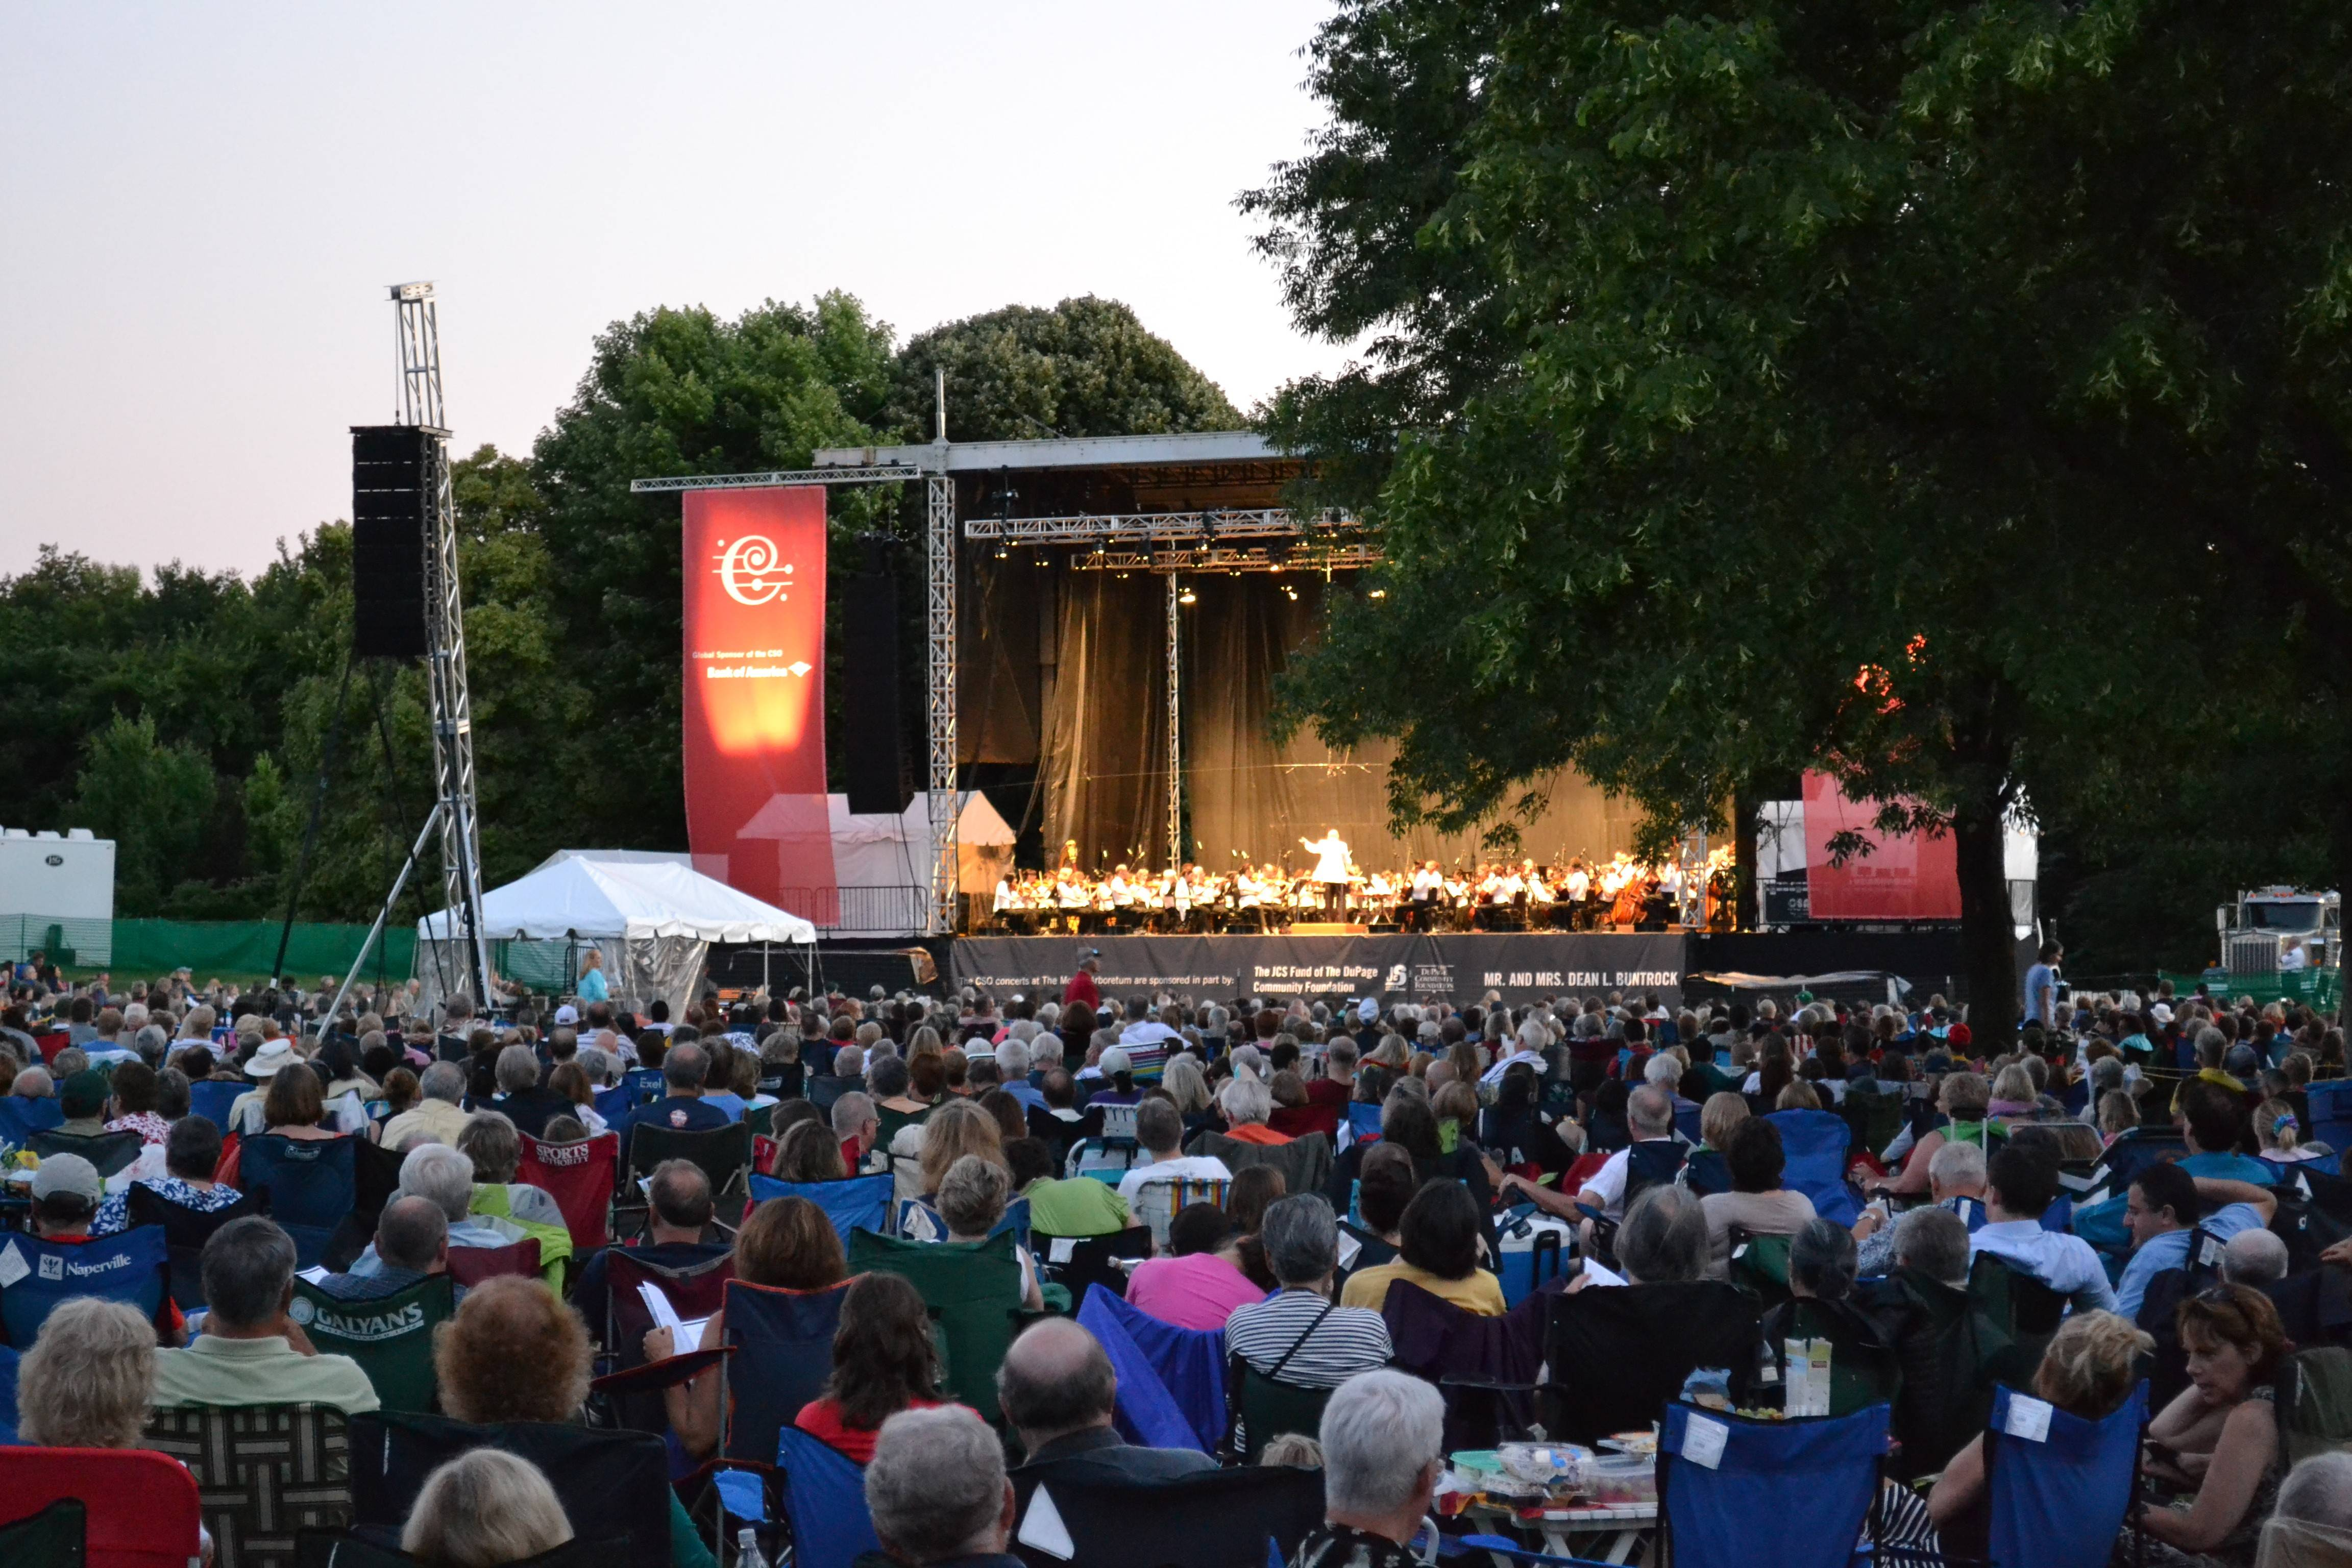 Large crowds are expected this week for three performances of the Chicago Symphony Orchestra at the Morton Arboretum in Lisle.